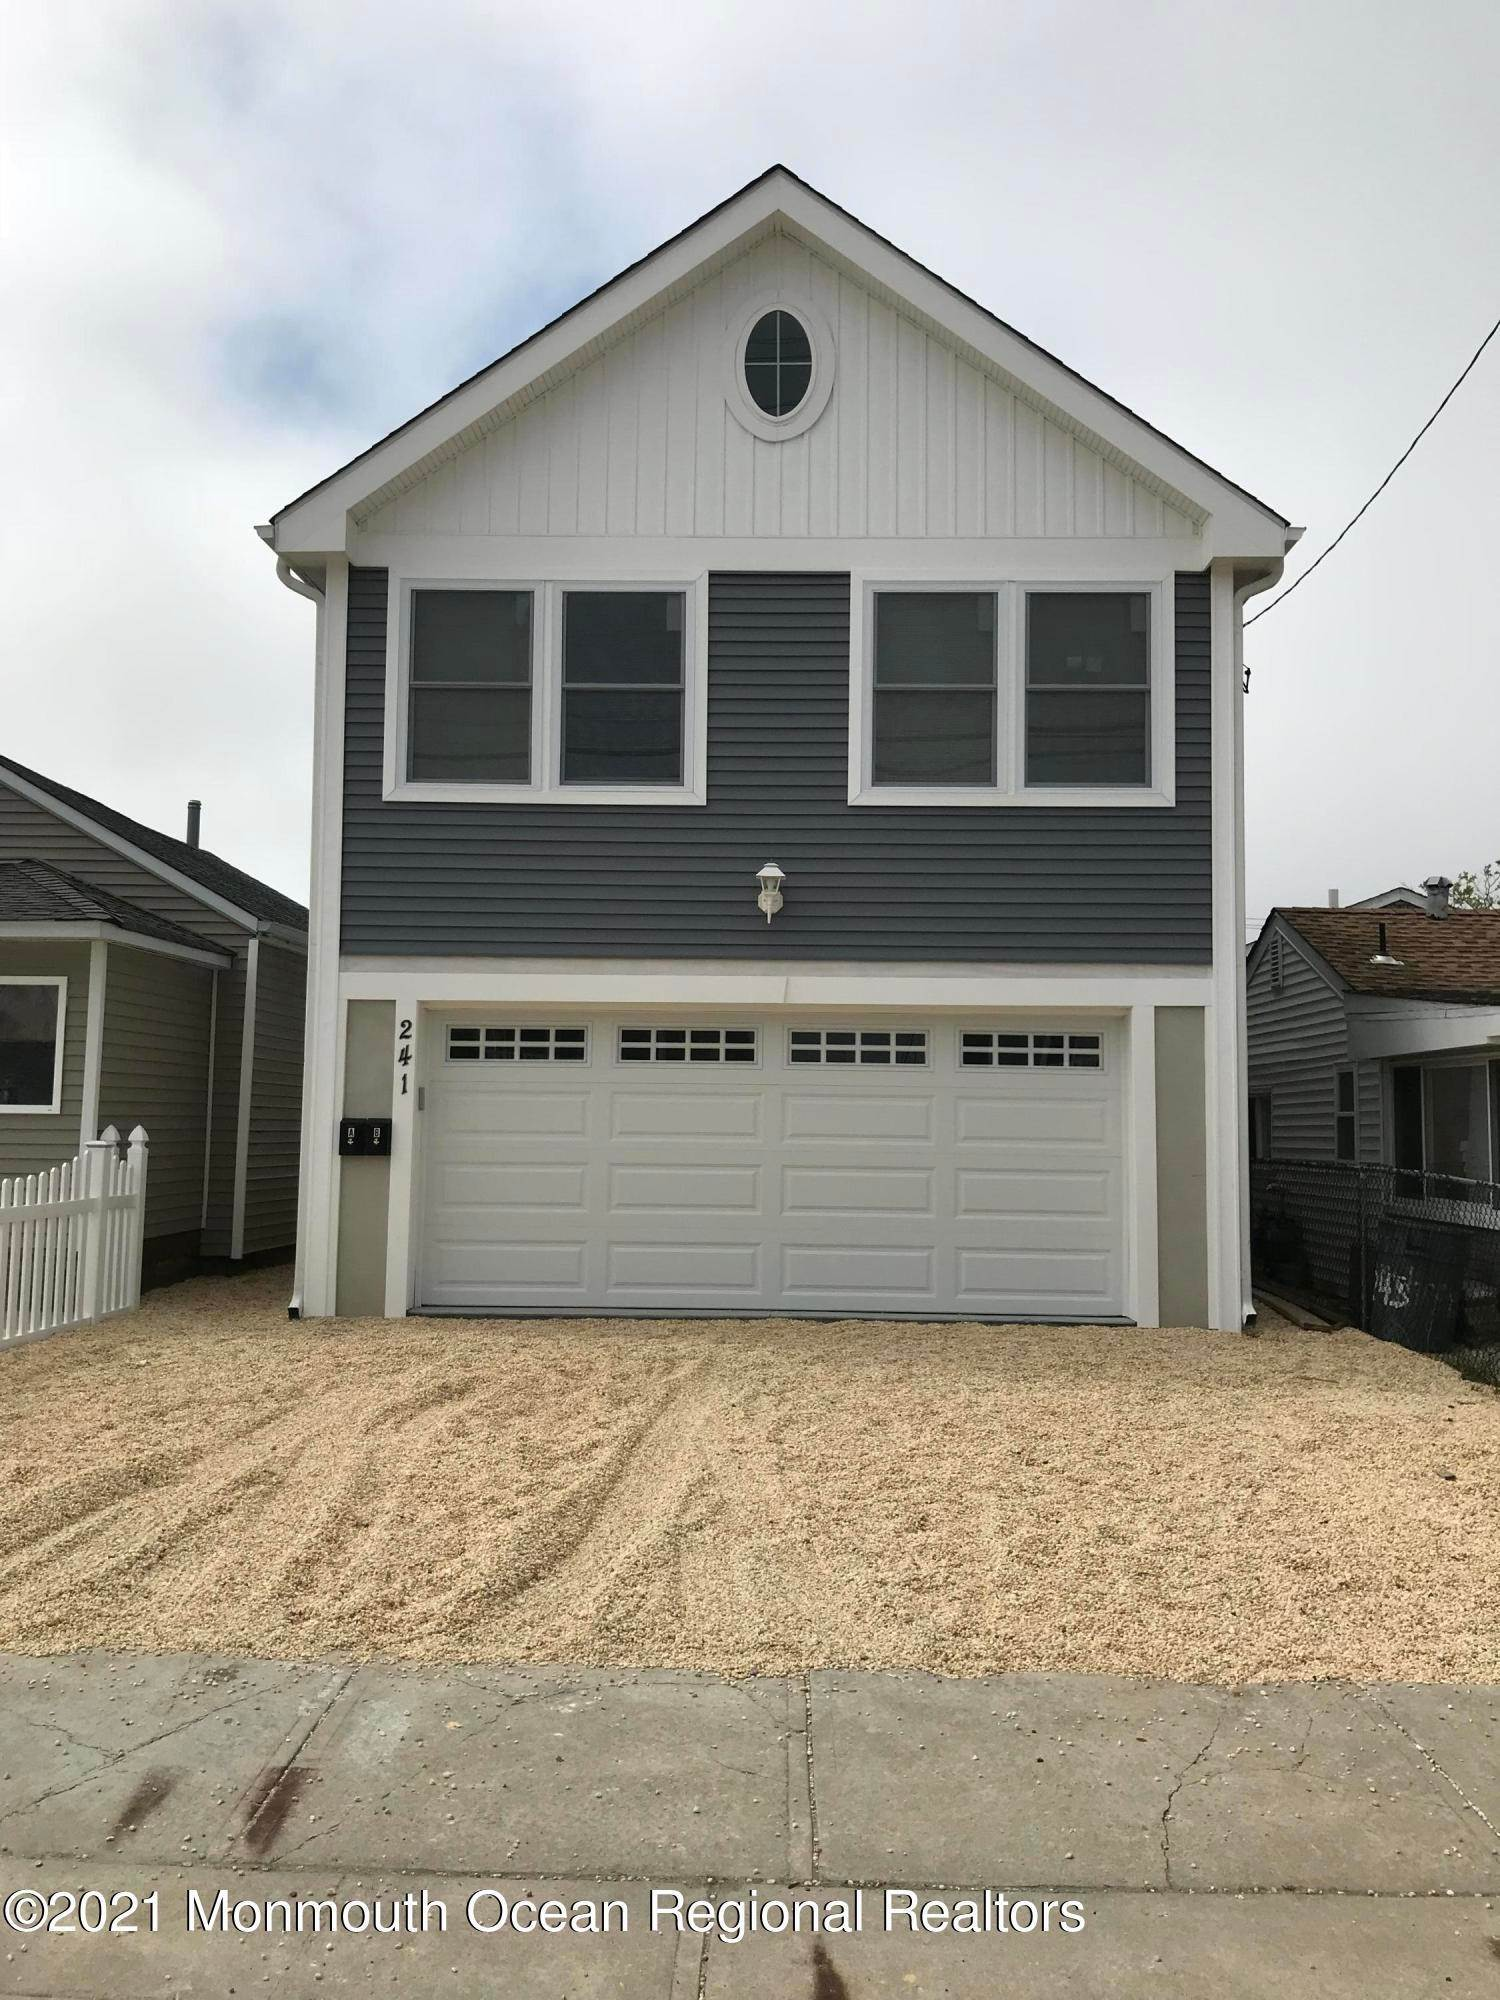 Property for Sale at 241 Hiering Avenue Seaside Heights, New Jersey 08751 United States